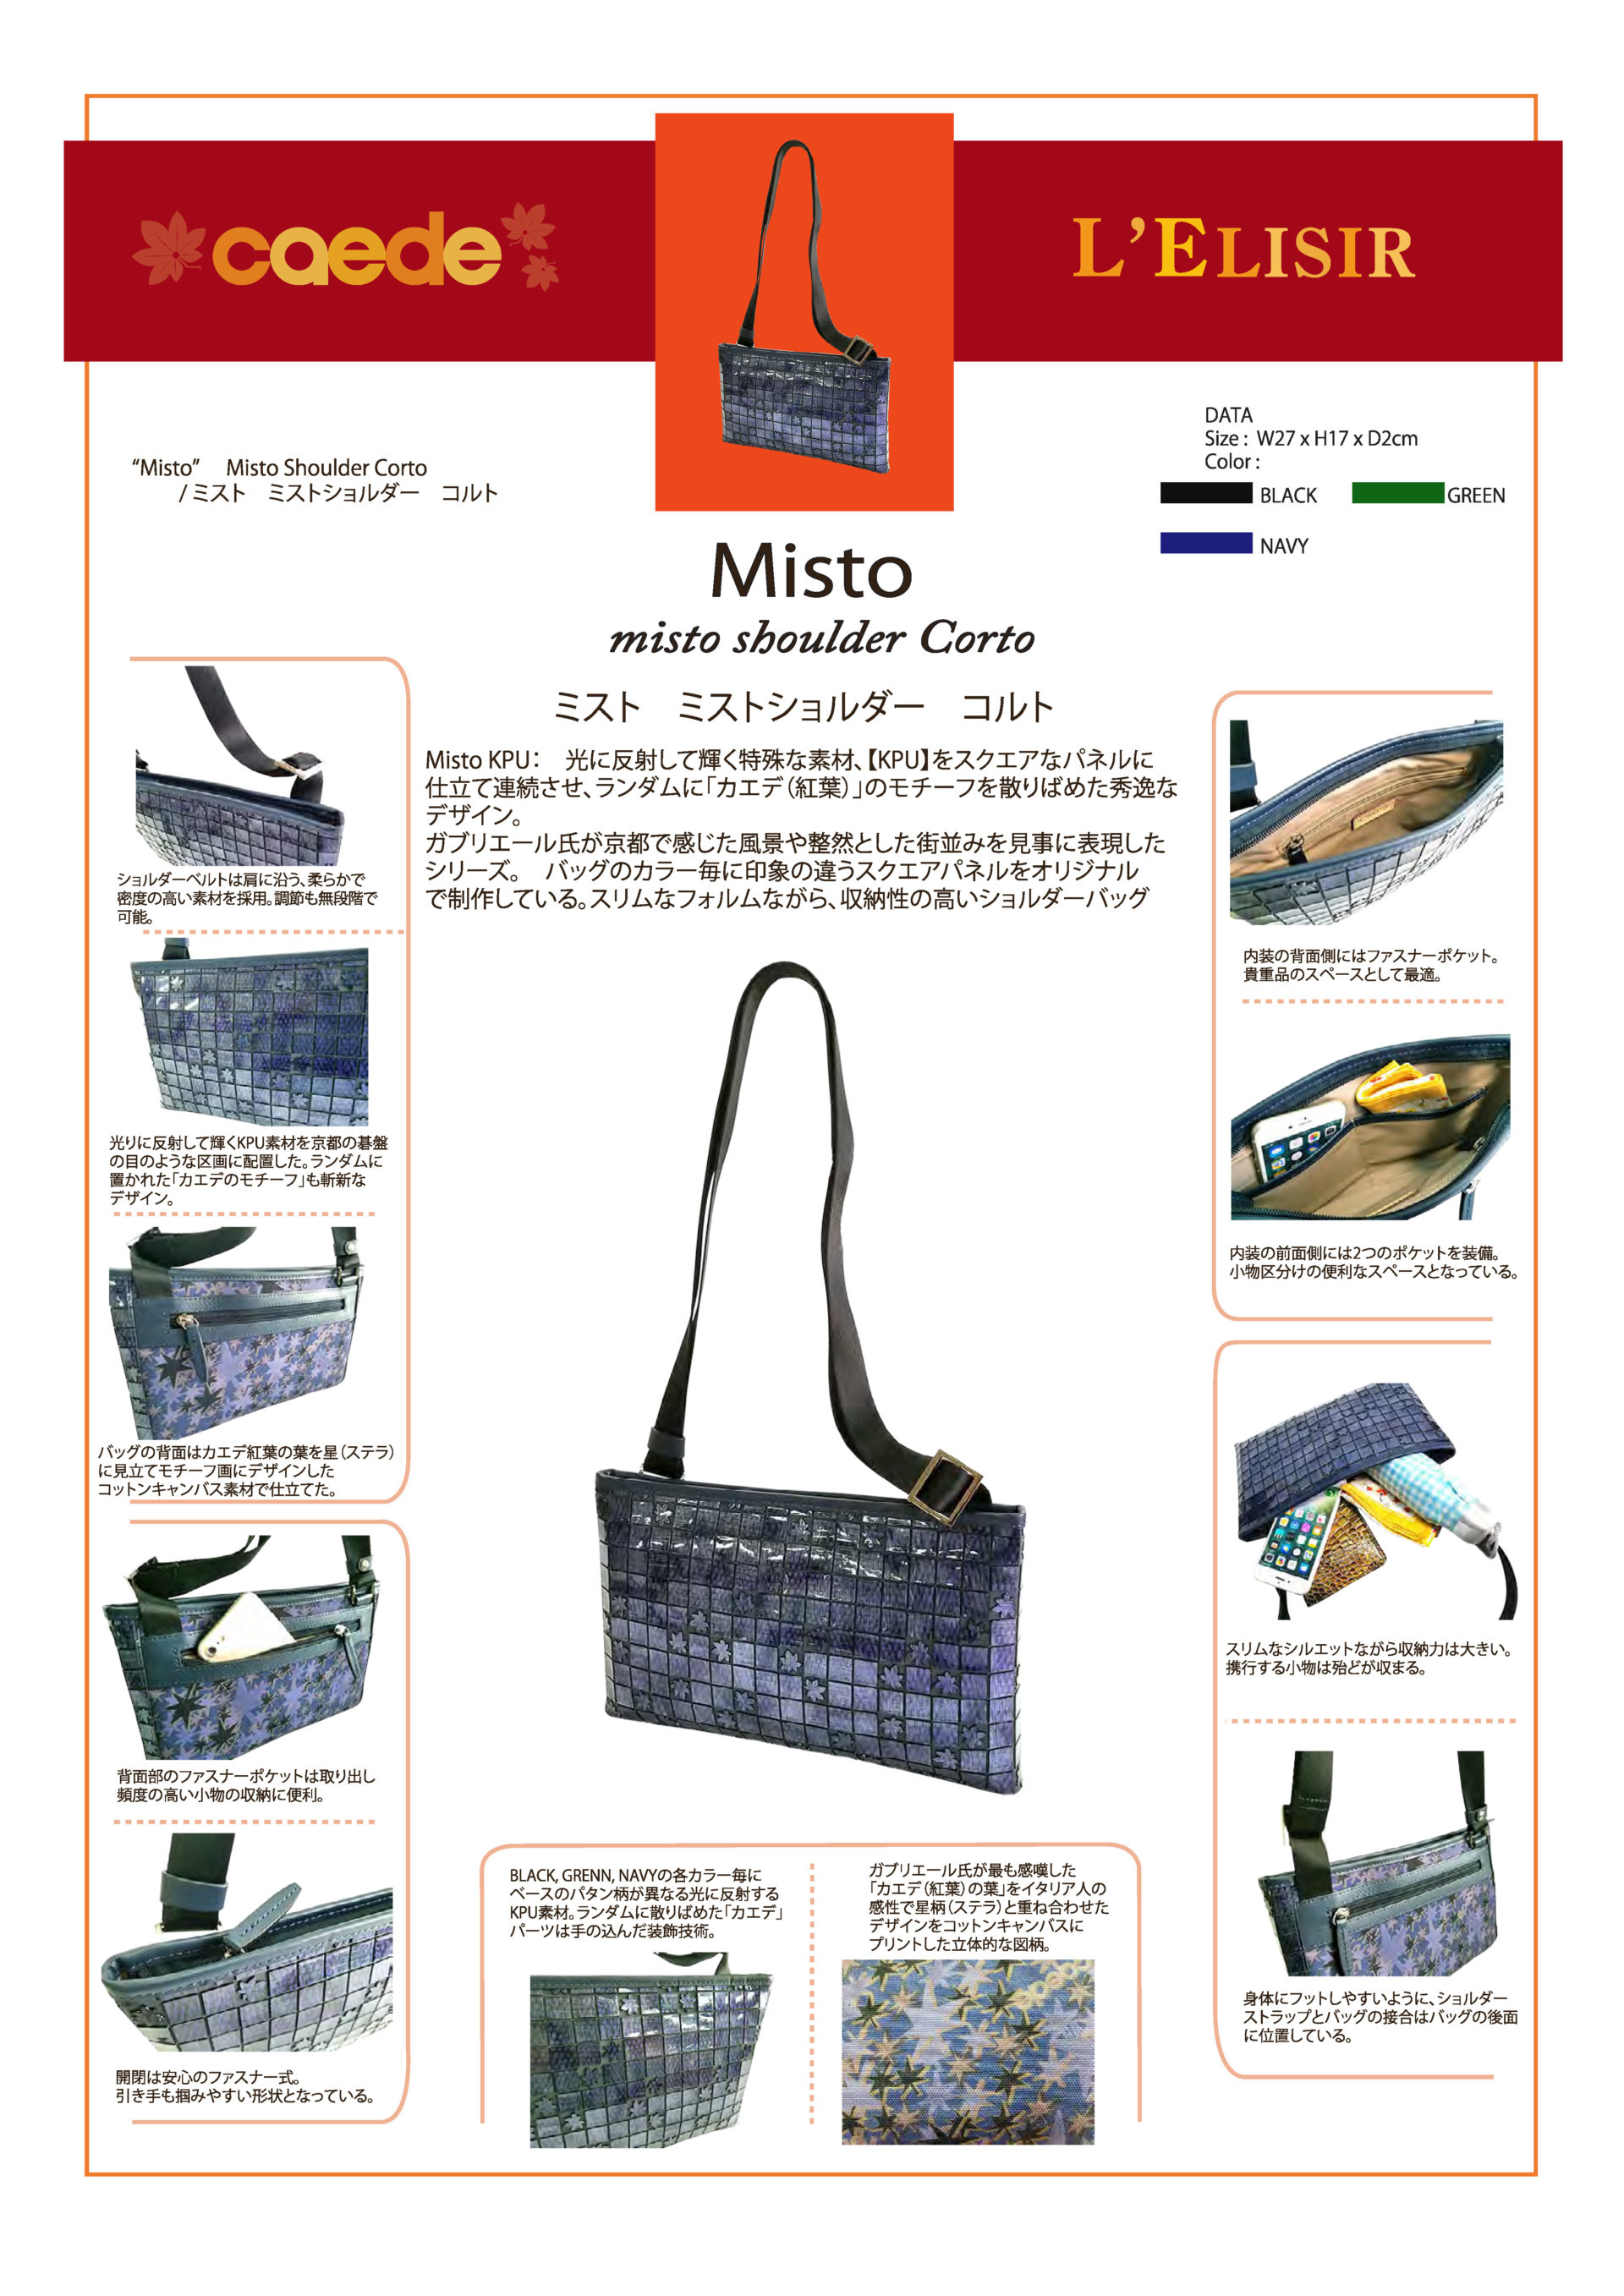 Misto Shoulder Corto | caede京都Collection